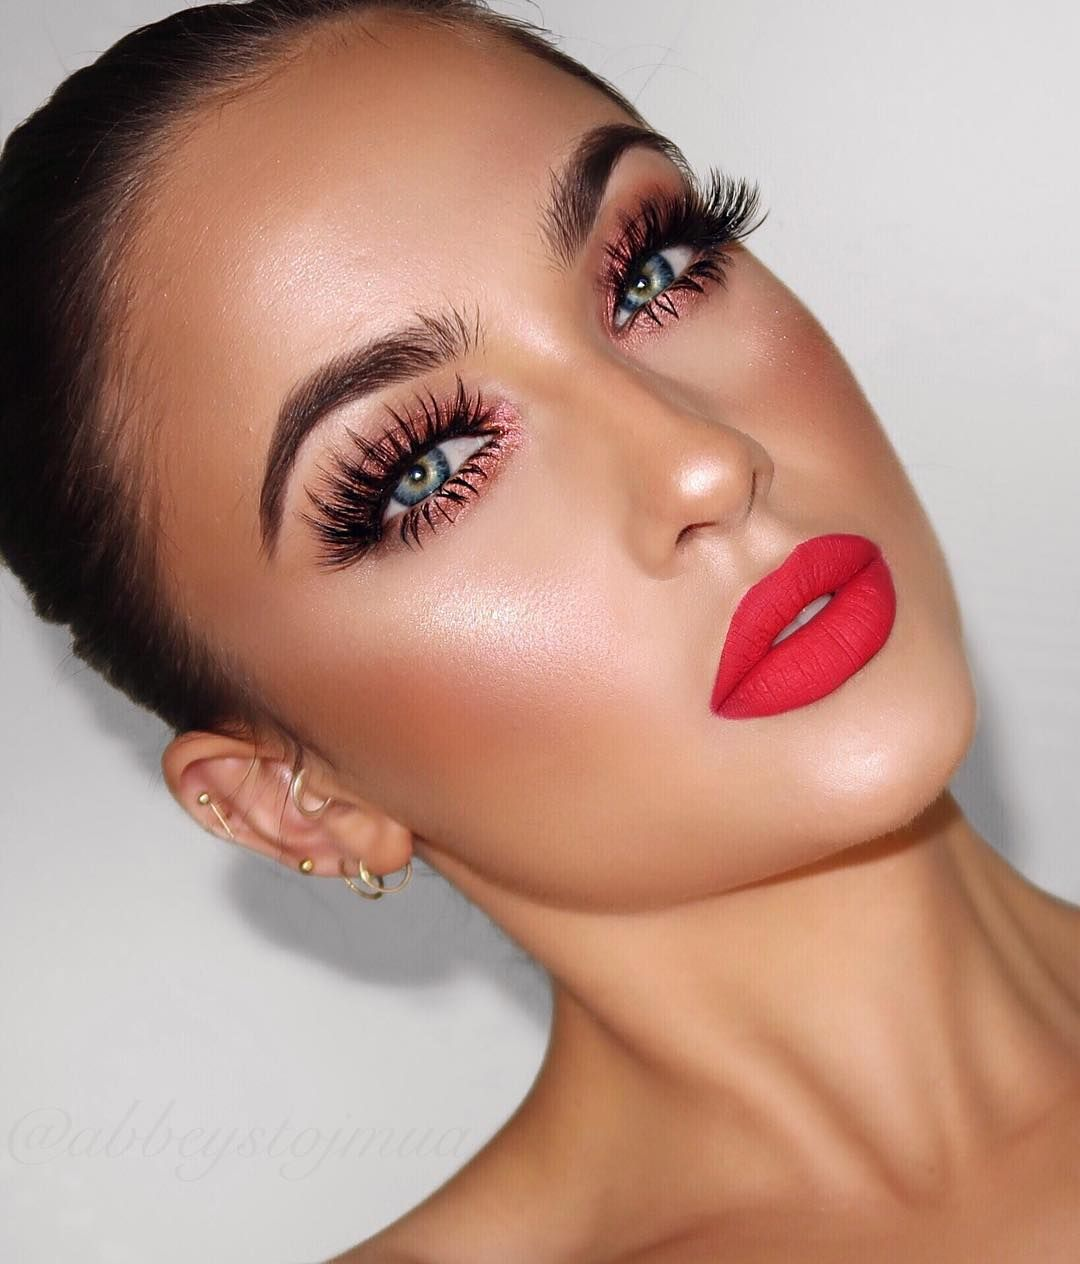 454 Likes 15 Comments Meggan Ory Makeupbymeggan On Instagram